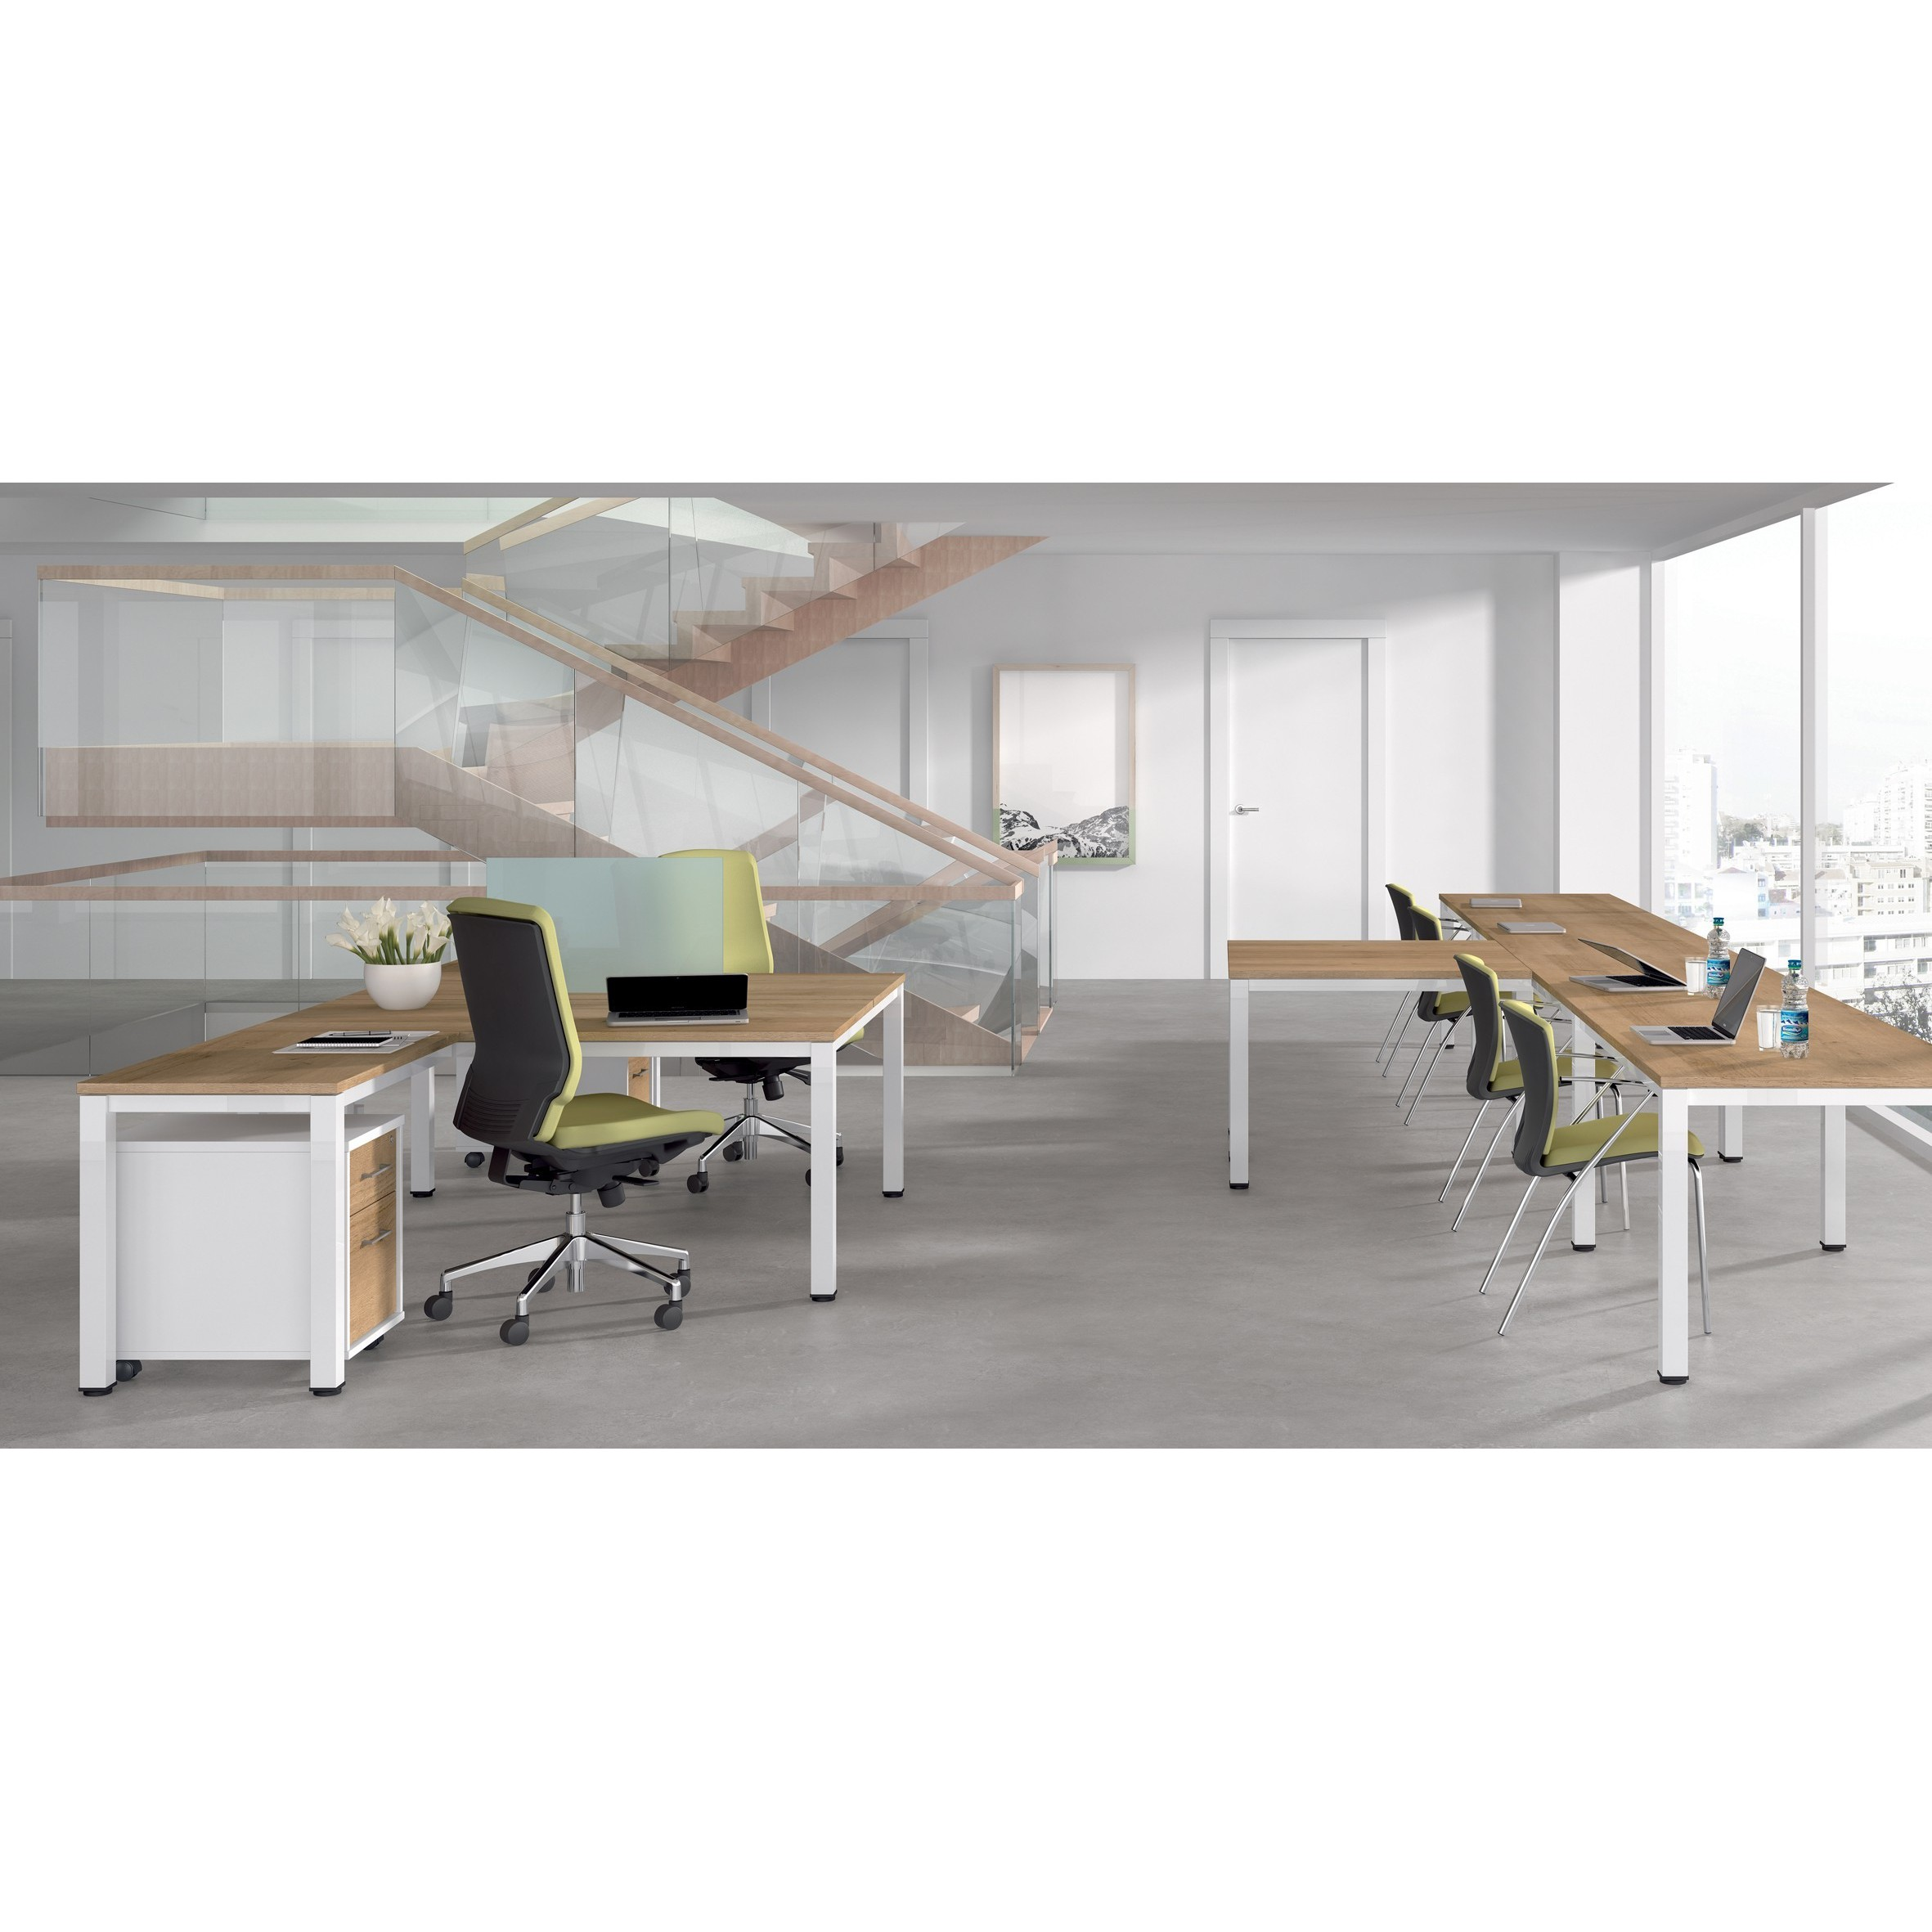 TABLE OFFICE 'S EXECUTIVE SERIES 140X80 WHITE/BEECH